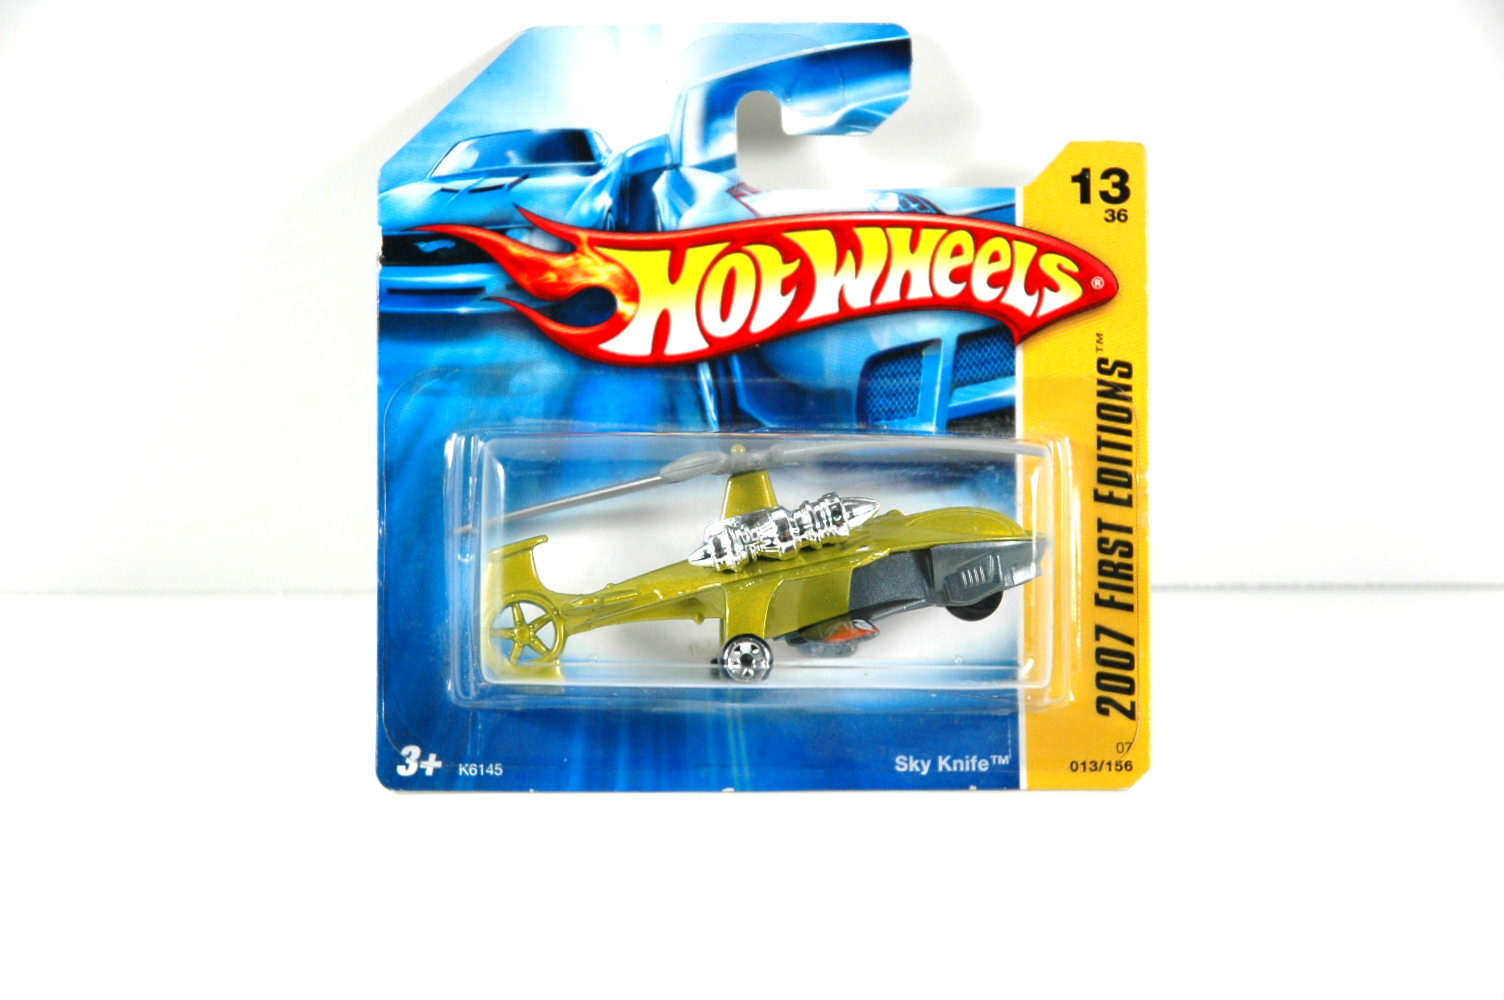 First Editon Mattel Hot Wheels Sky Knife Diecast Helicopter